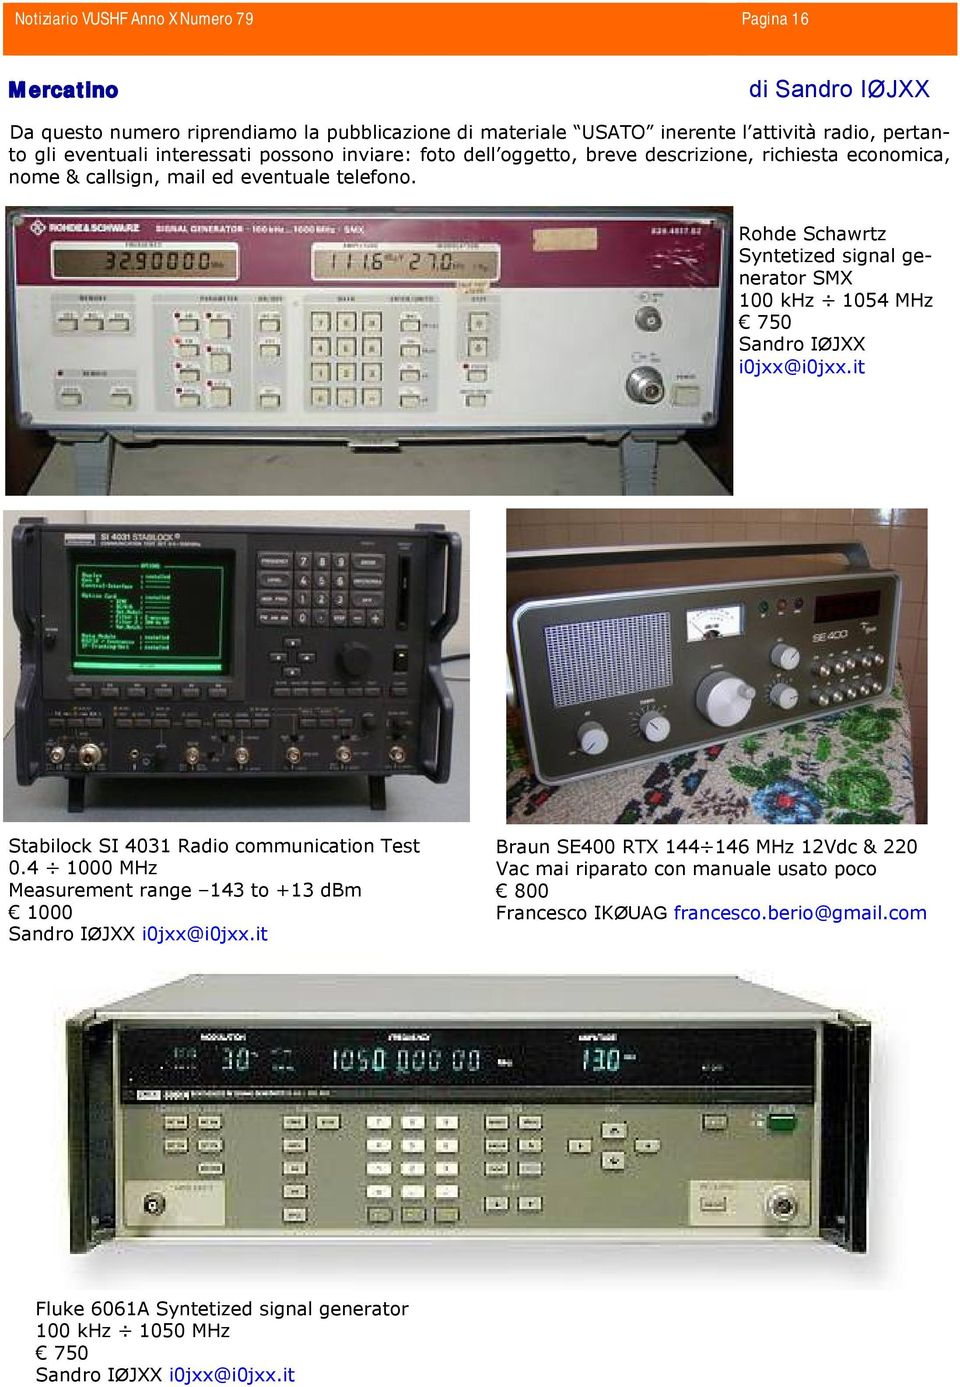 Rohde Schawrtz Syntetized signal generator SMX 100 khz 1054 MHz 750 Sandro IØJXX i0jxx@i0jxx.it Stabilock SI 4031 Radio communication Test 0.